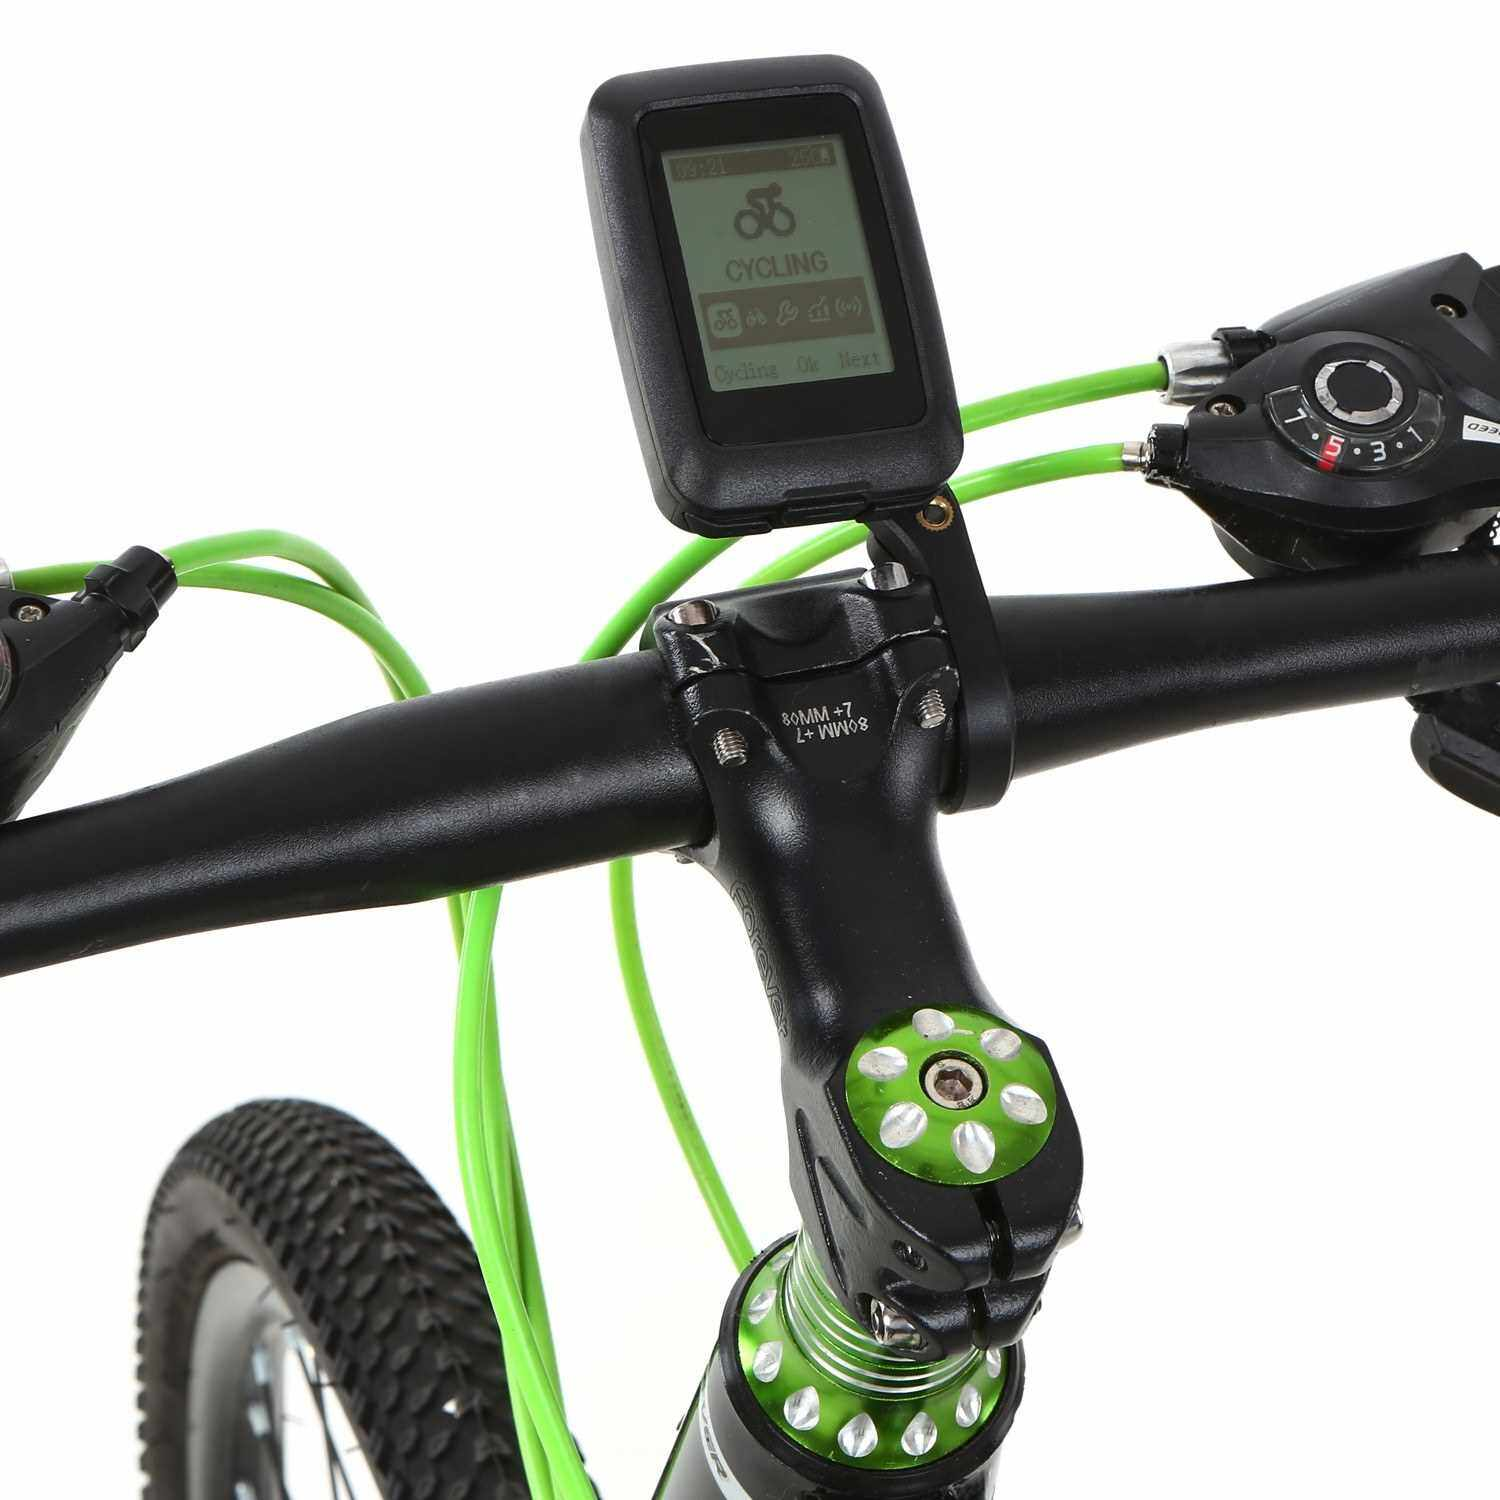 Best Selling Waterproof GPS Cycling Computer USB Rechargeable MTB Bike Bicycle Riding Wireless Sports Computer Speedometer Odometer (Standard)